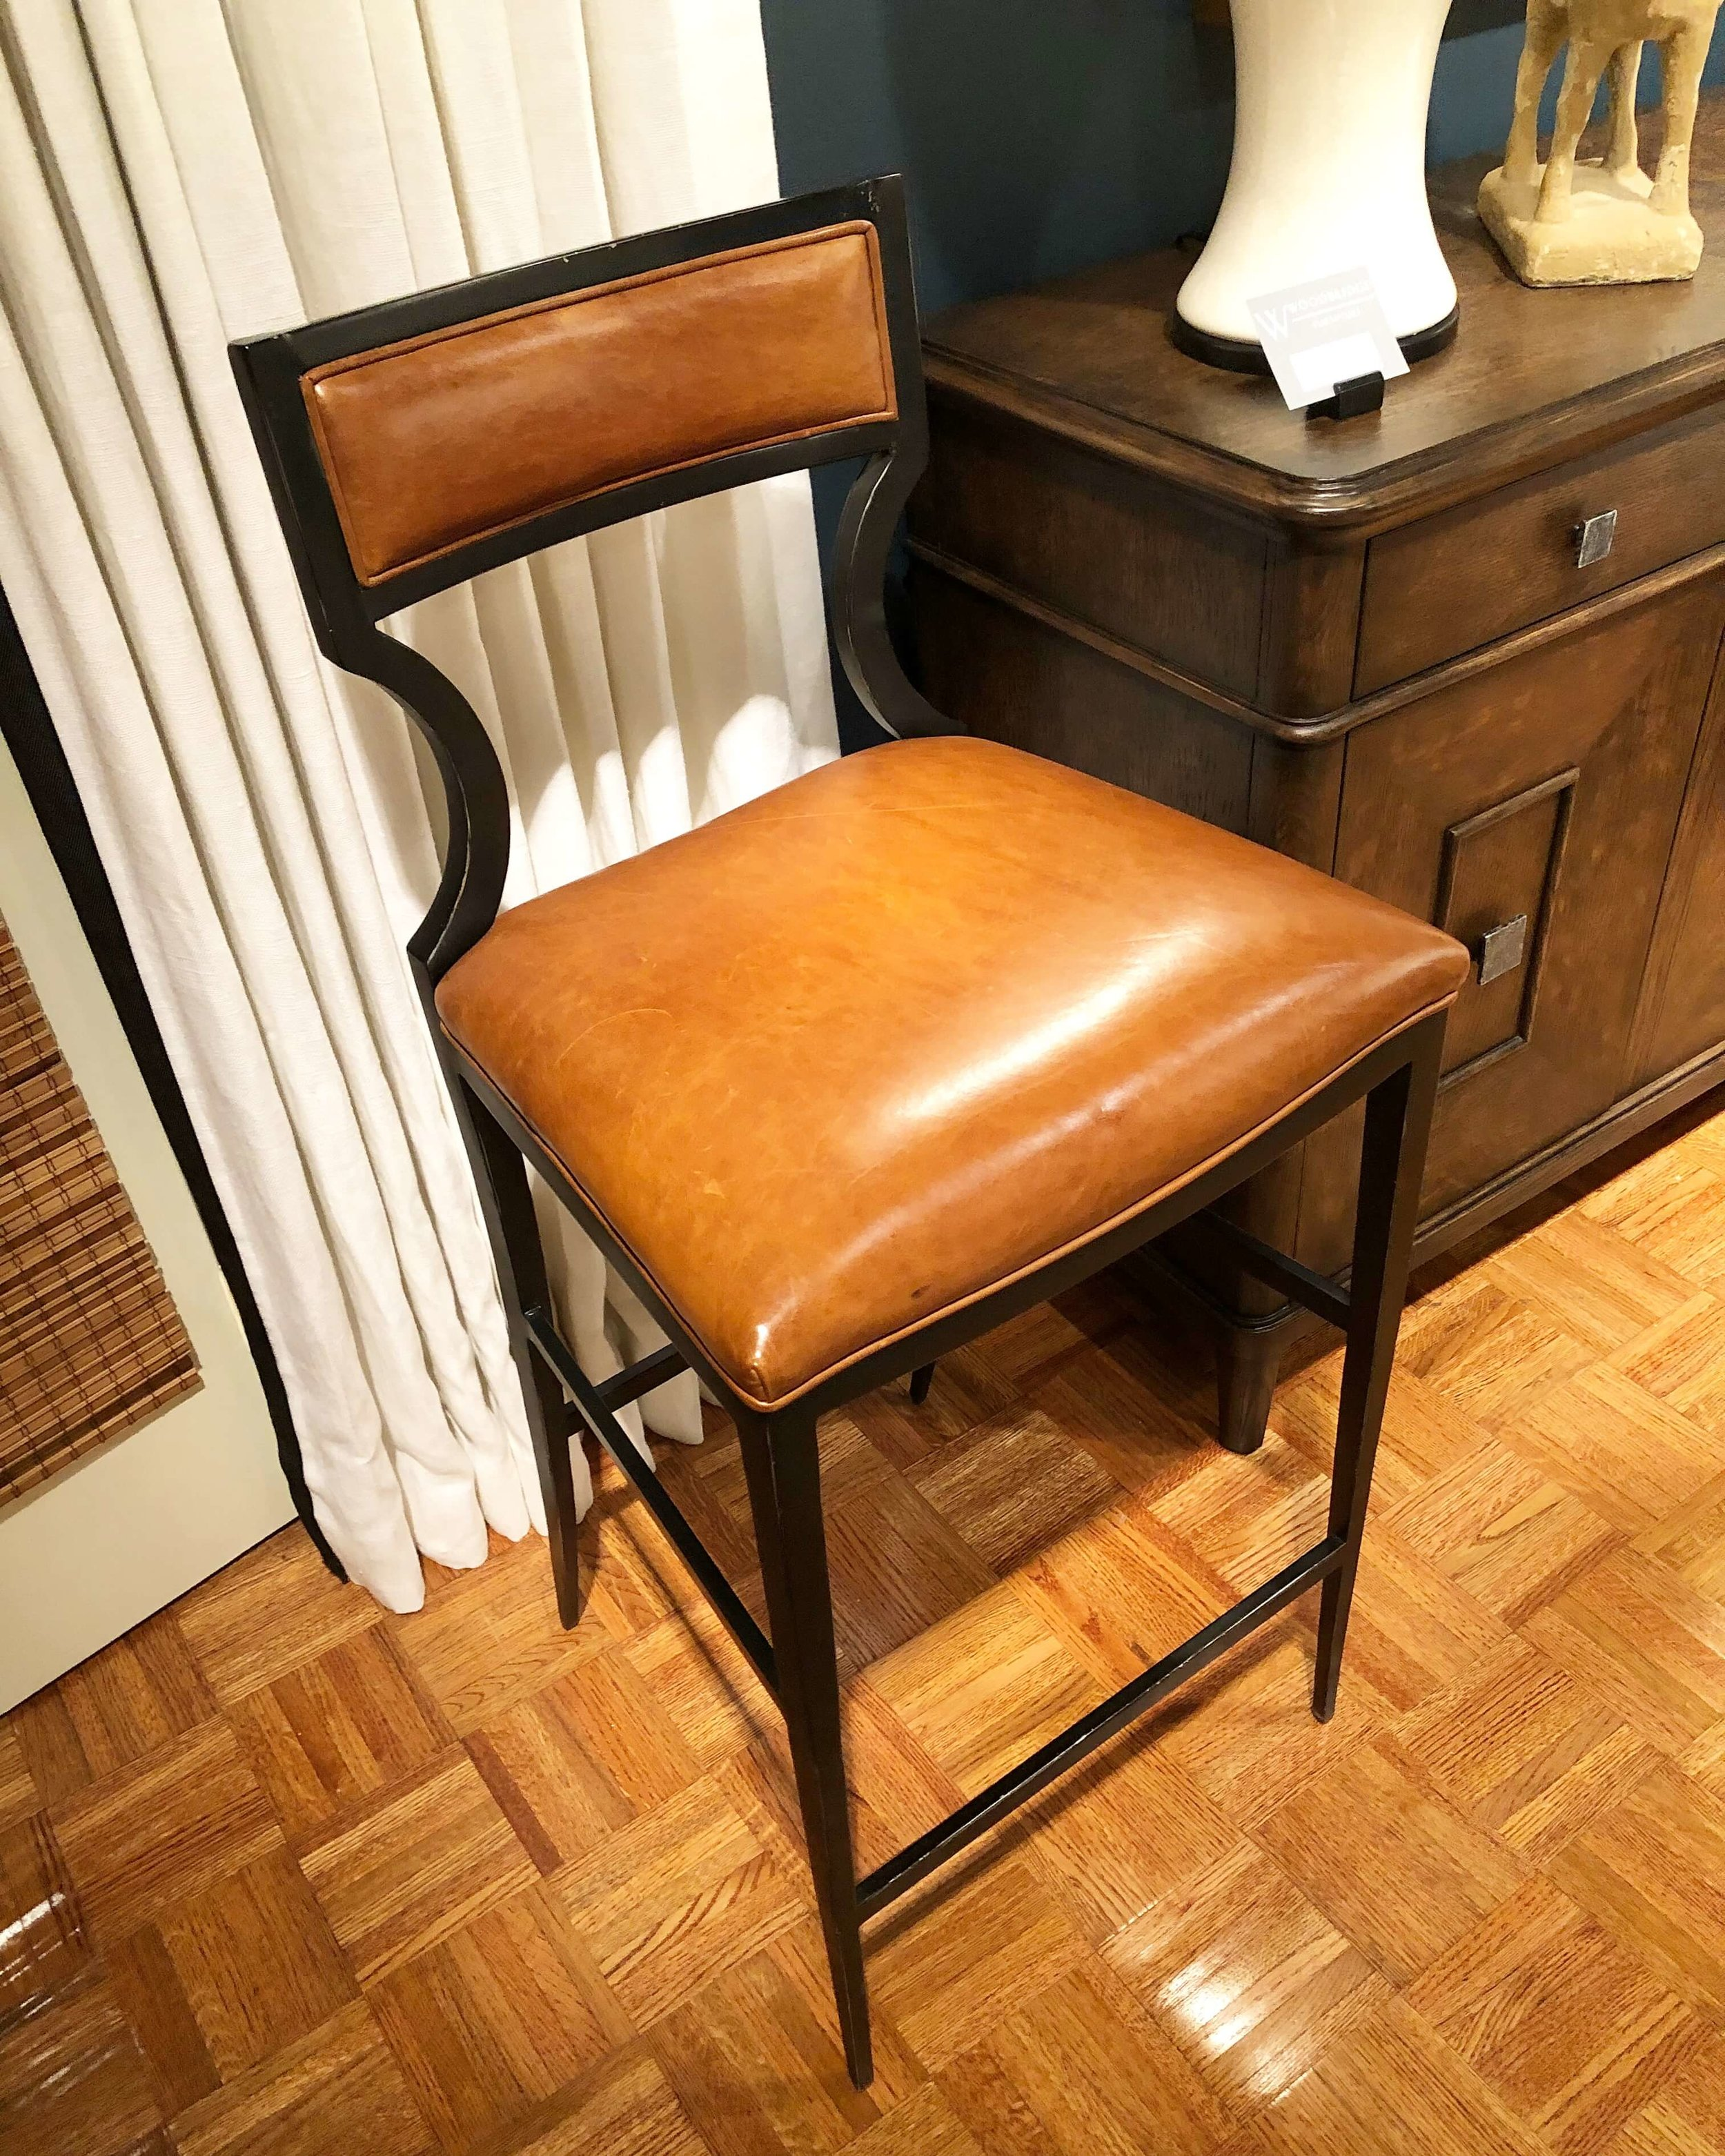 Caramel leather upholstered metal barstool from Woodbridge